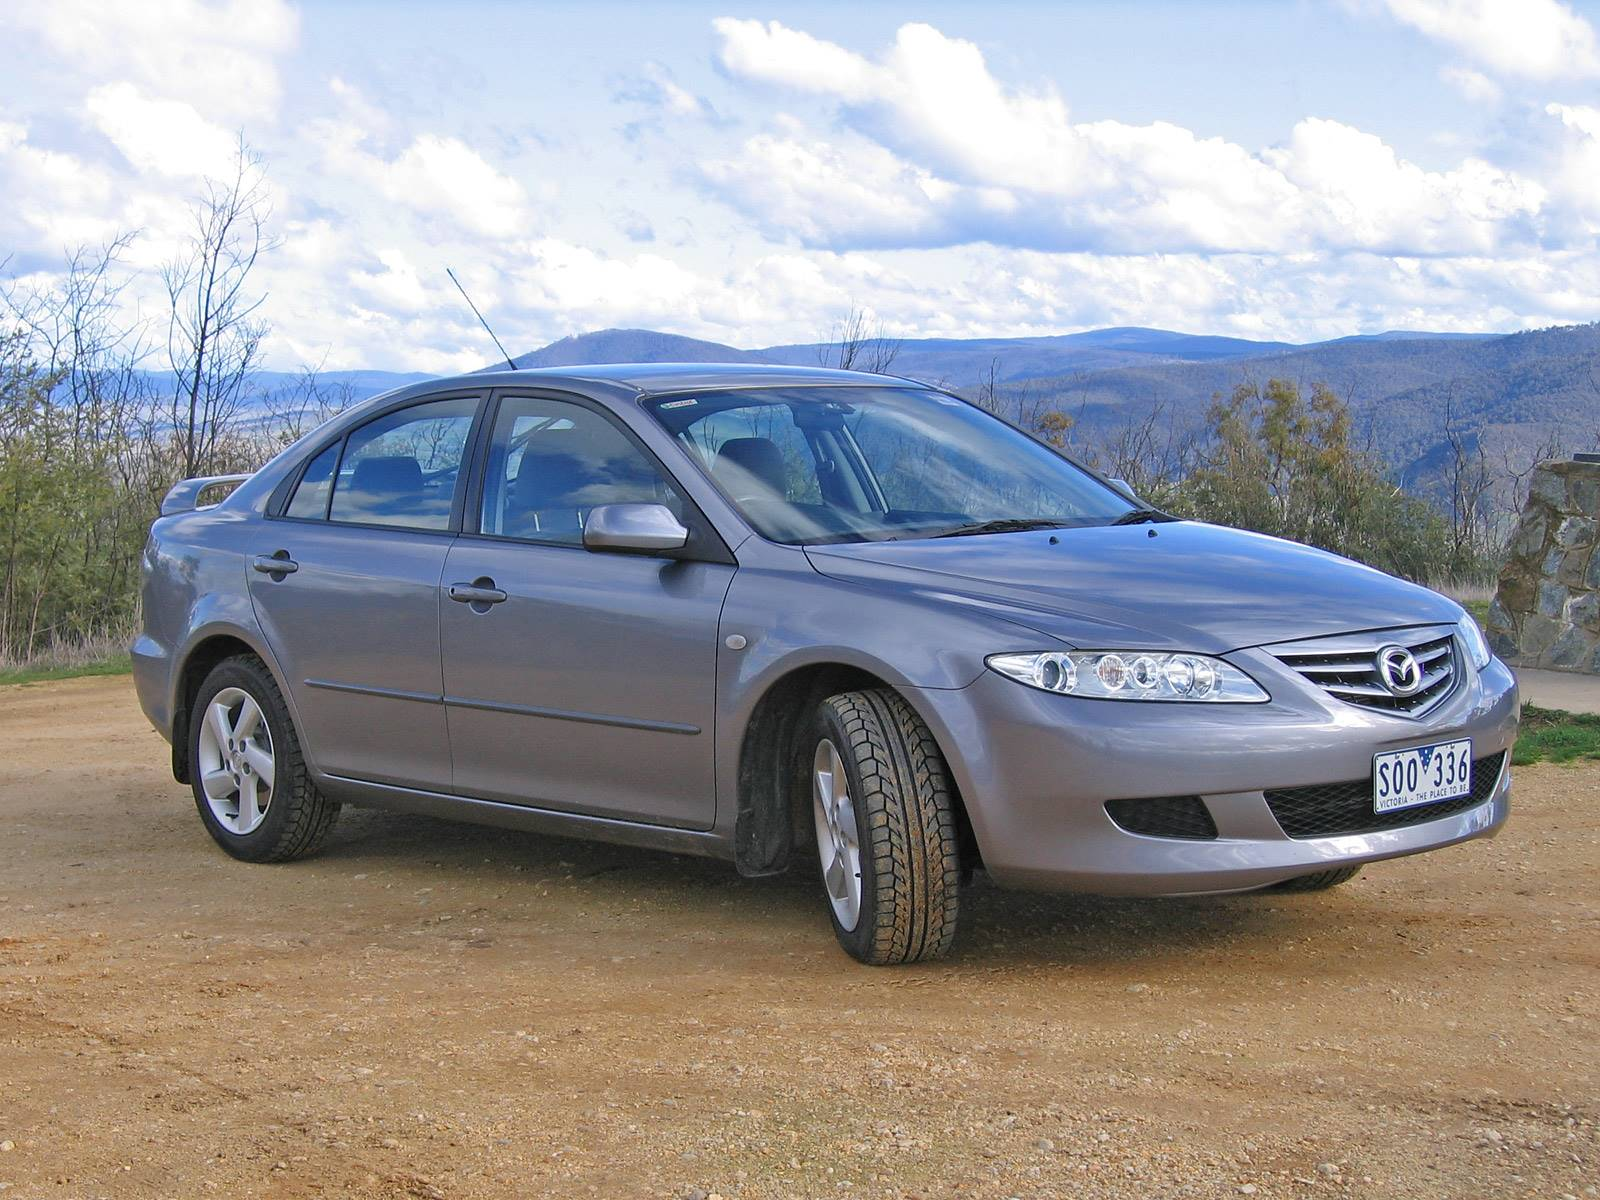 Captivating ... 2003 Mazda 6. Starting From $2,424 22 City / 29 Highway Mpg